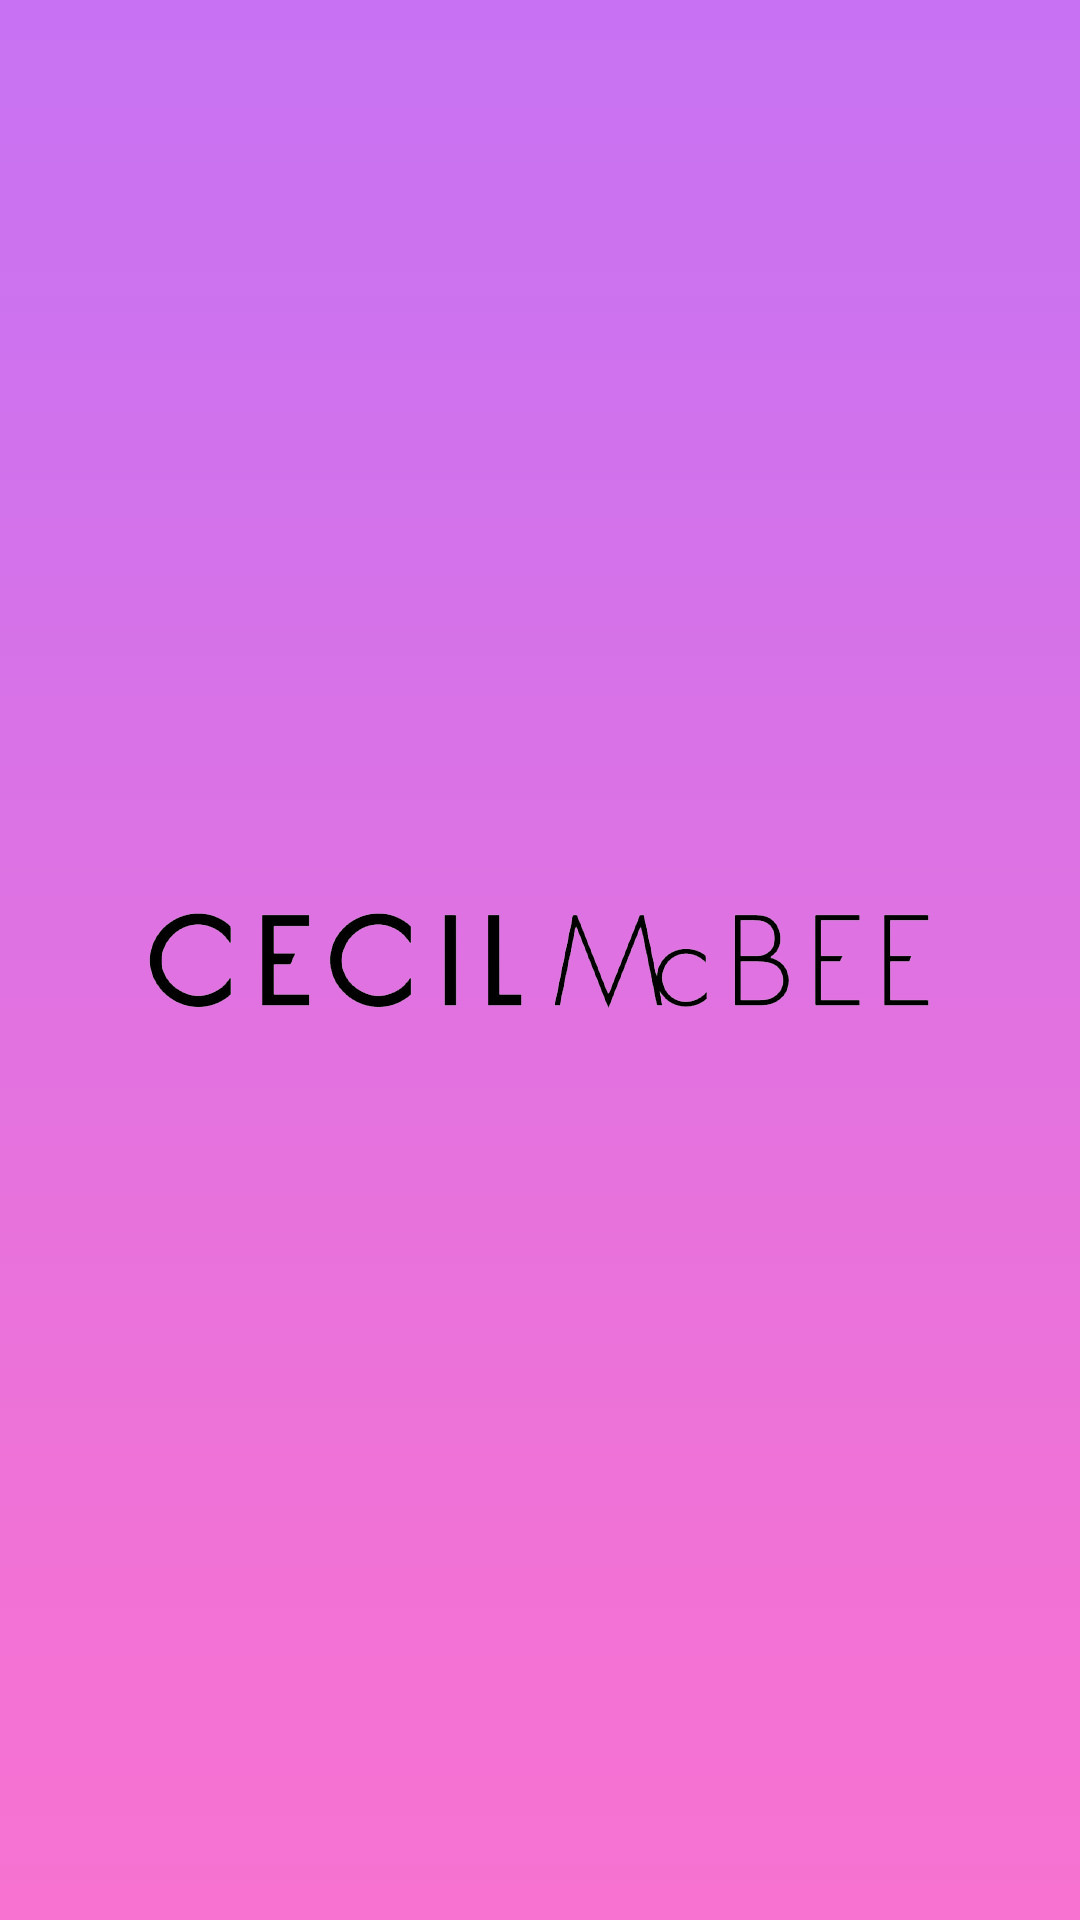 cecil00003 - セシルマクビー[CECIL McBEE]の高画質スマホ壁紙23枚 [iPhone&Androidに対応]